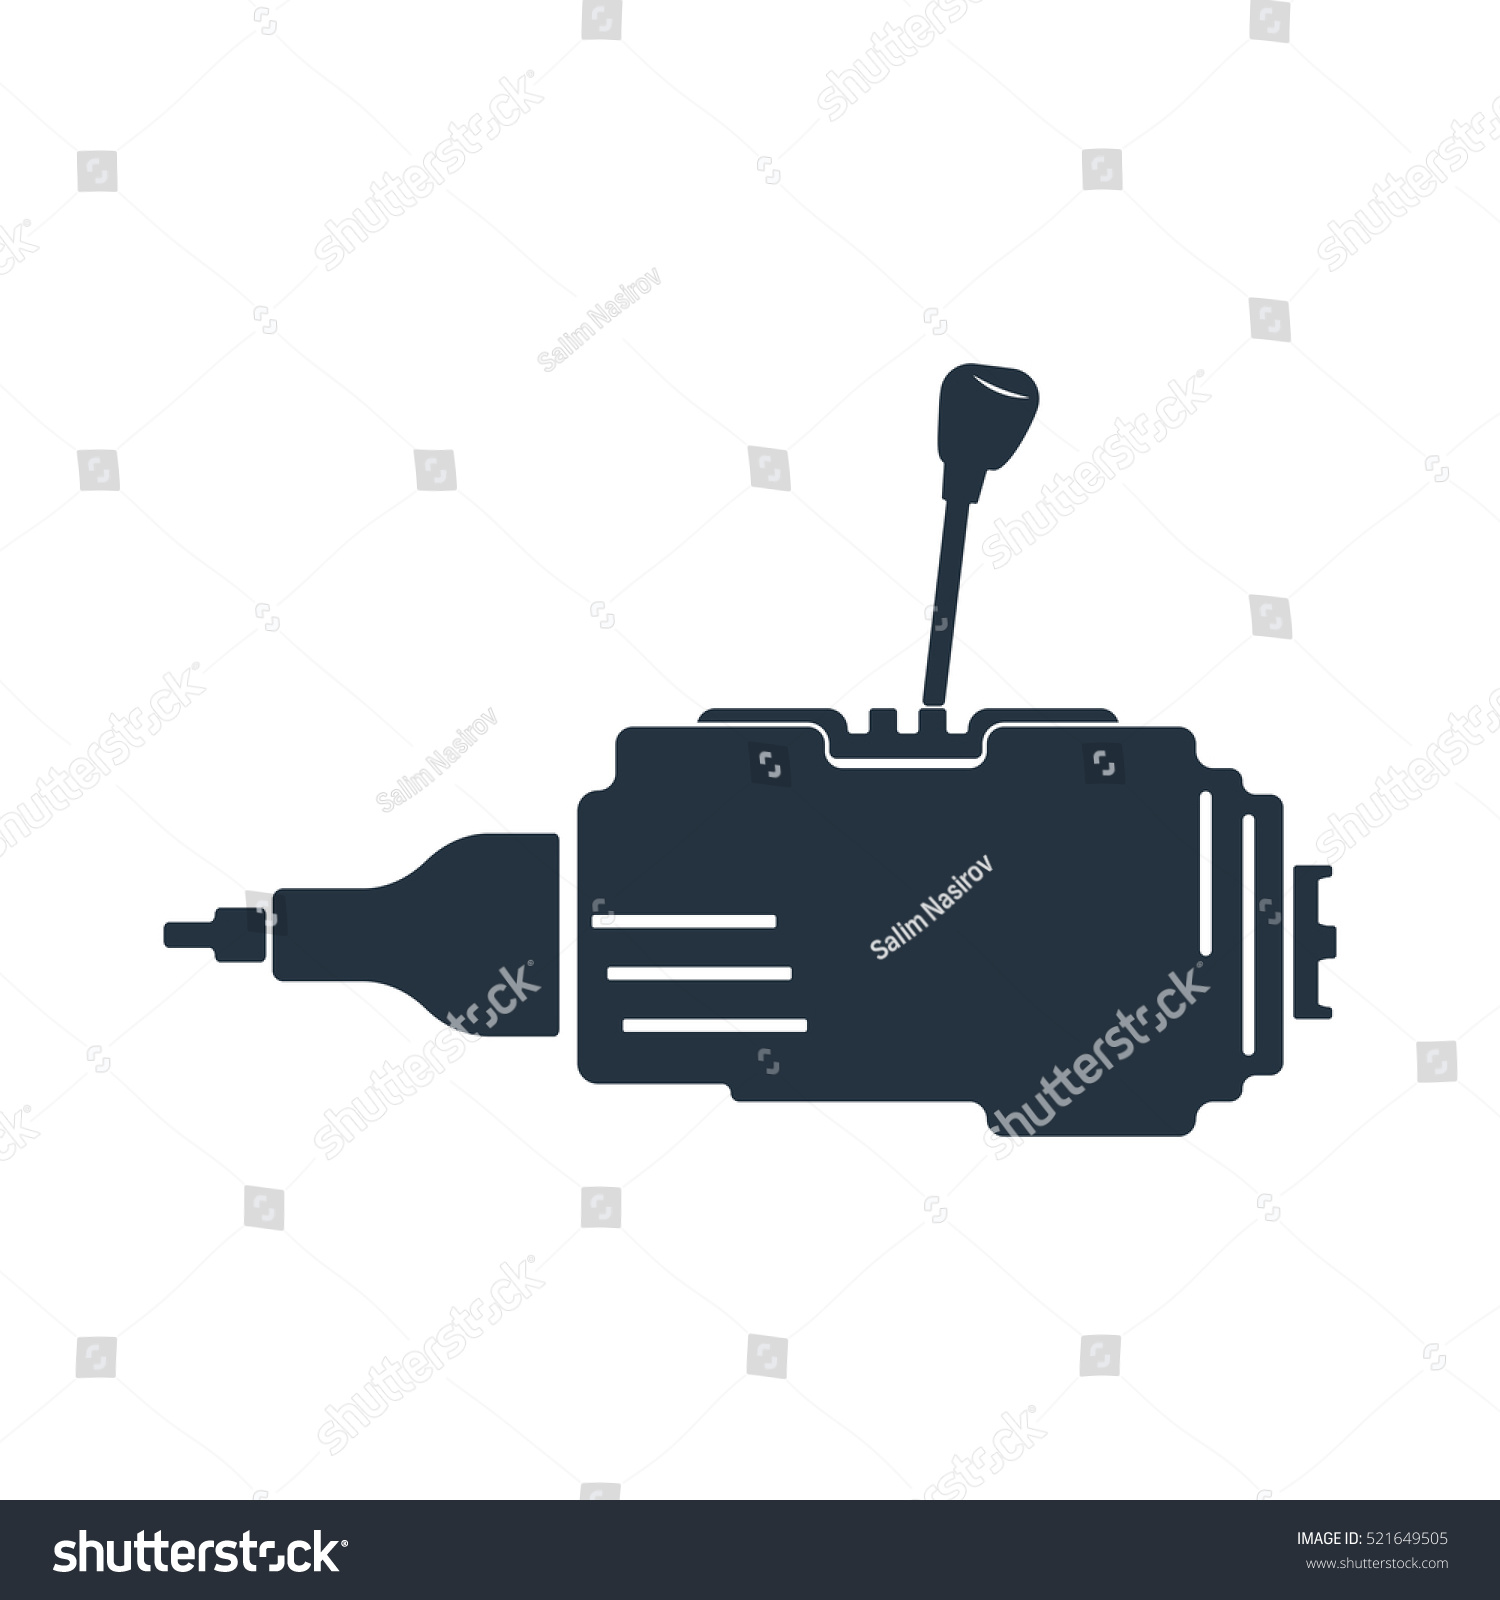 hight resolution of side gear box gear shift transmission isolated icon on white background auto service repair car detail